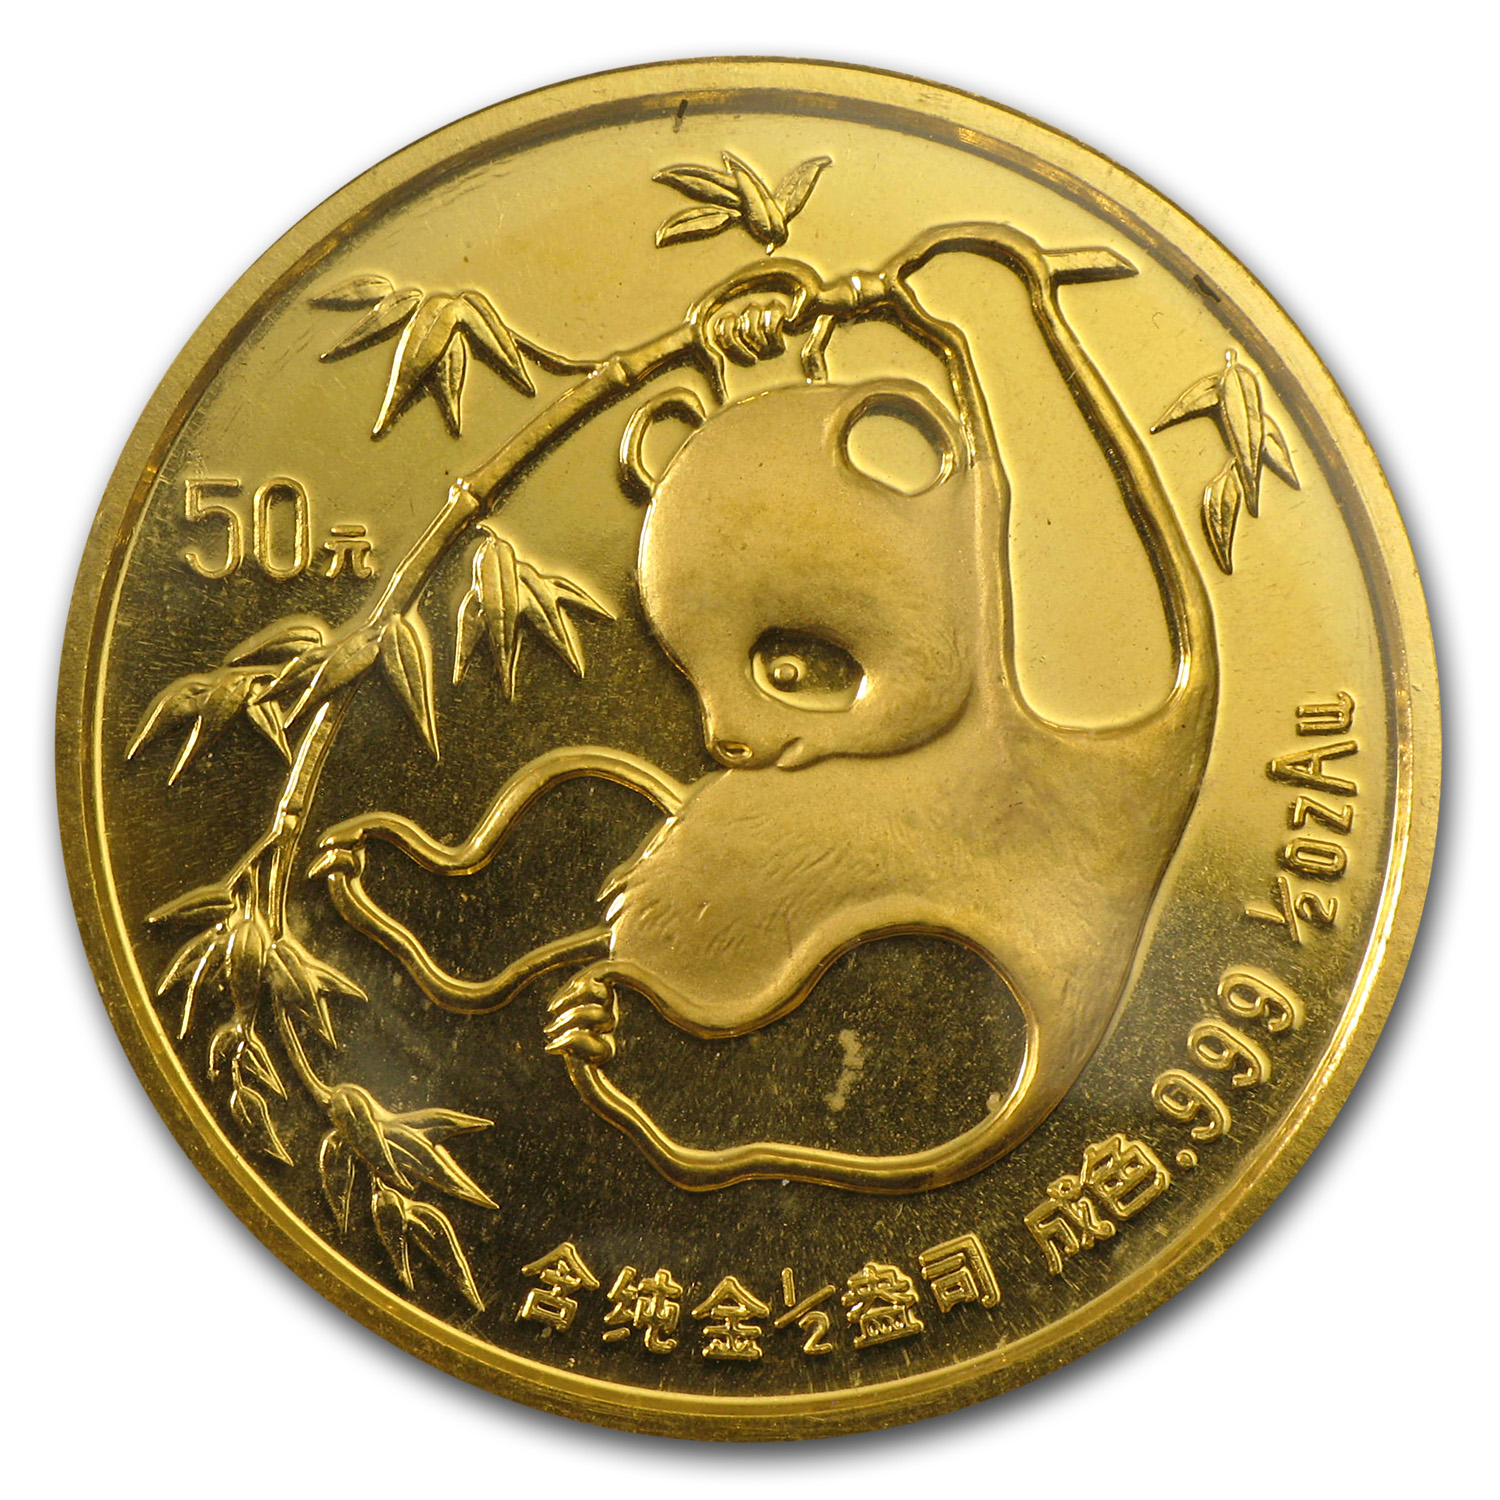 1985 (1/2 oz) Gold Chinese Pandas - (Sealed)